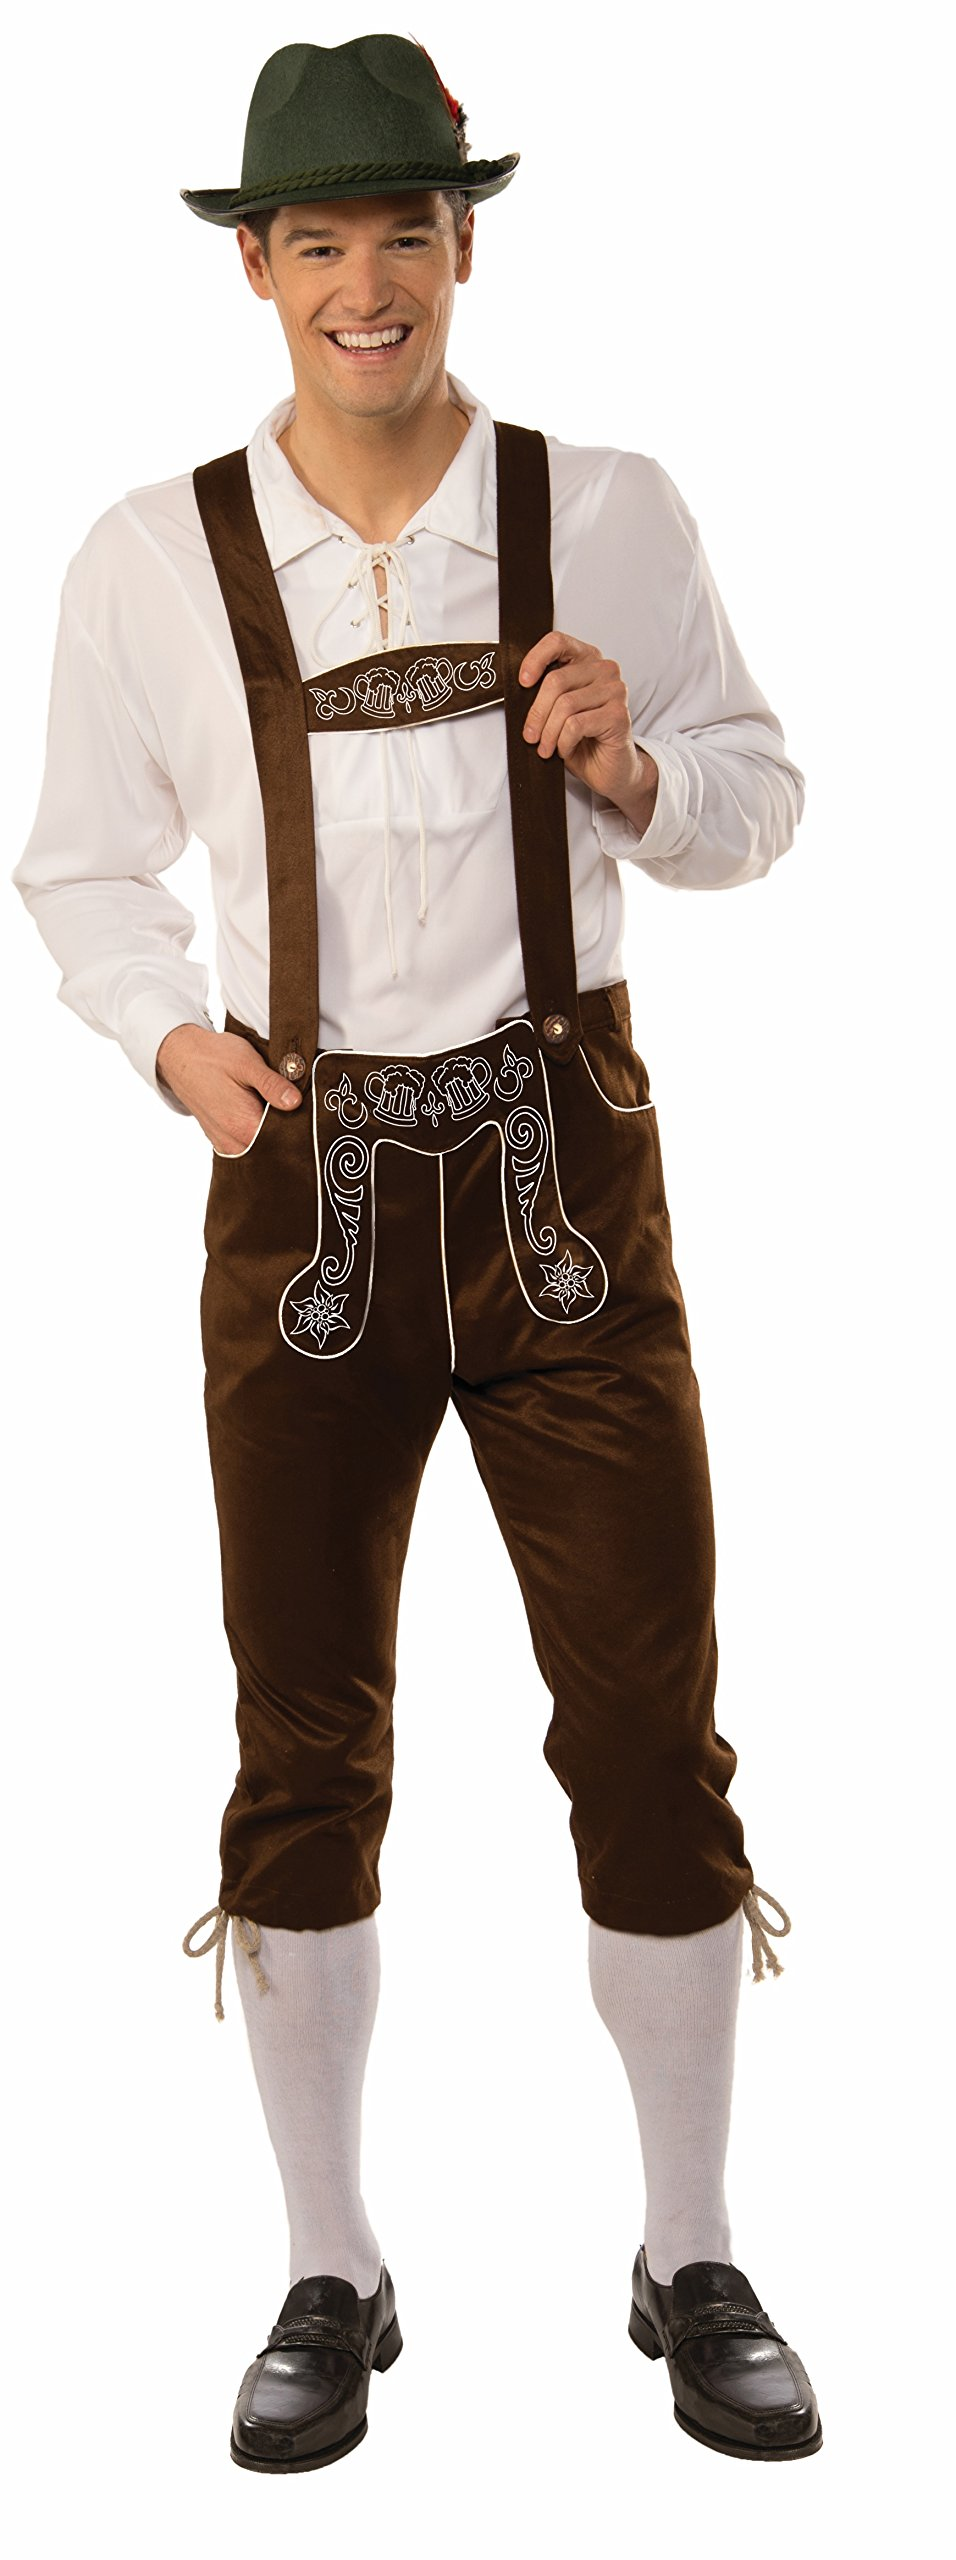 Forum Men's Deluxe Lederhosen, Brown, X-Large by Forum Novelties (Image #1)